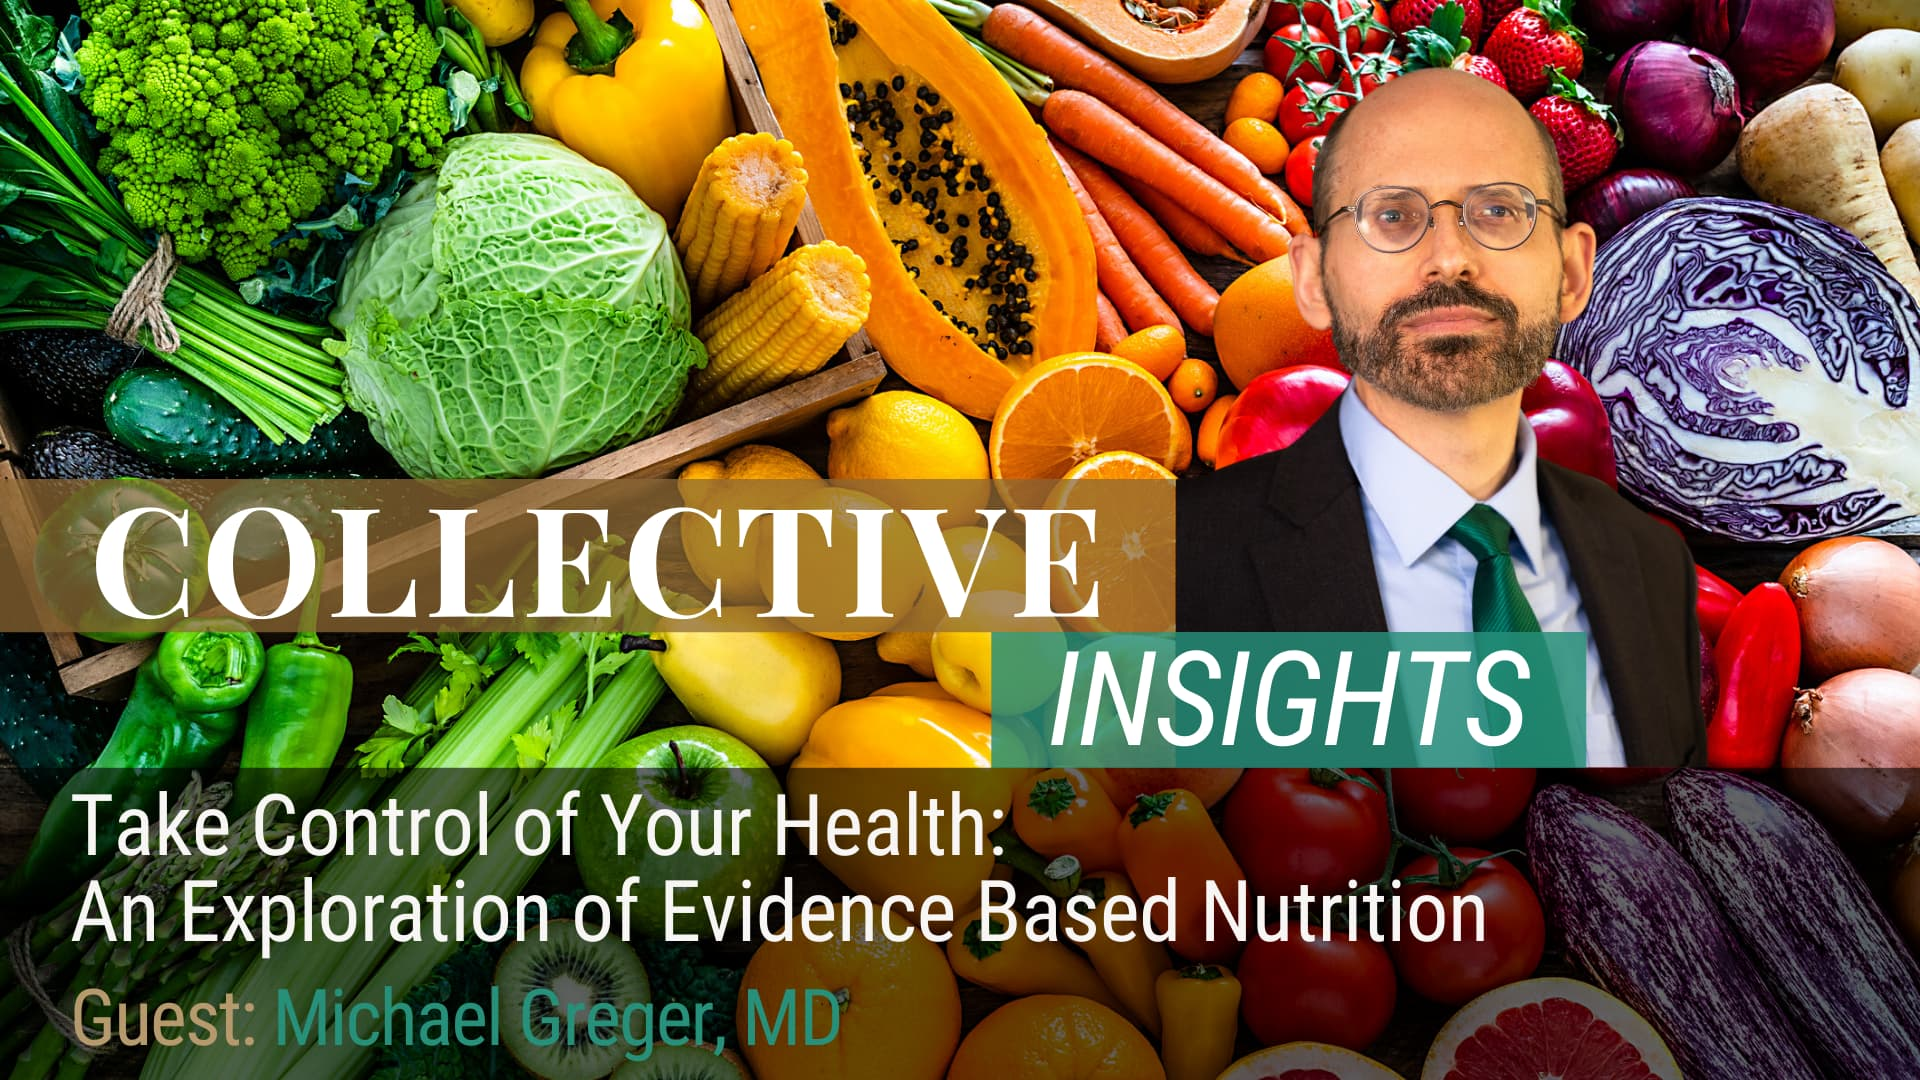 Take Control of Your Health: An Exploration of Evidence Based Nutrition